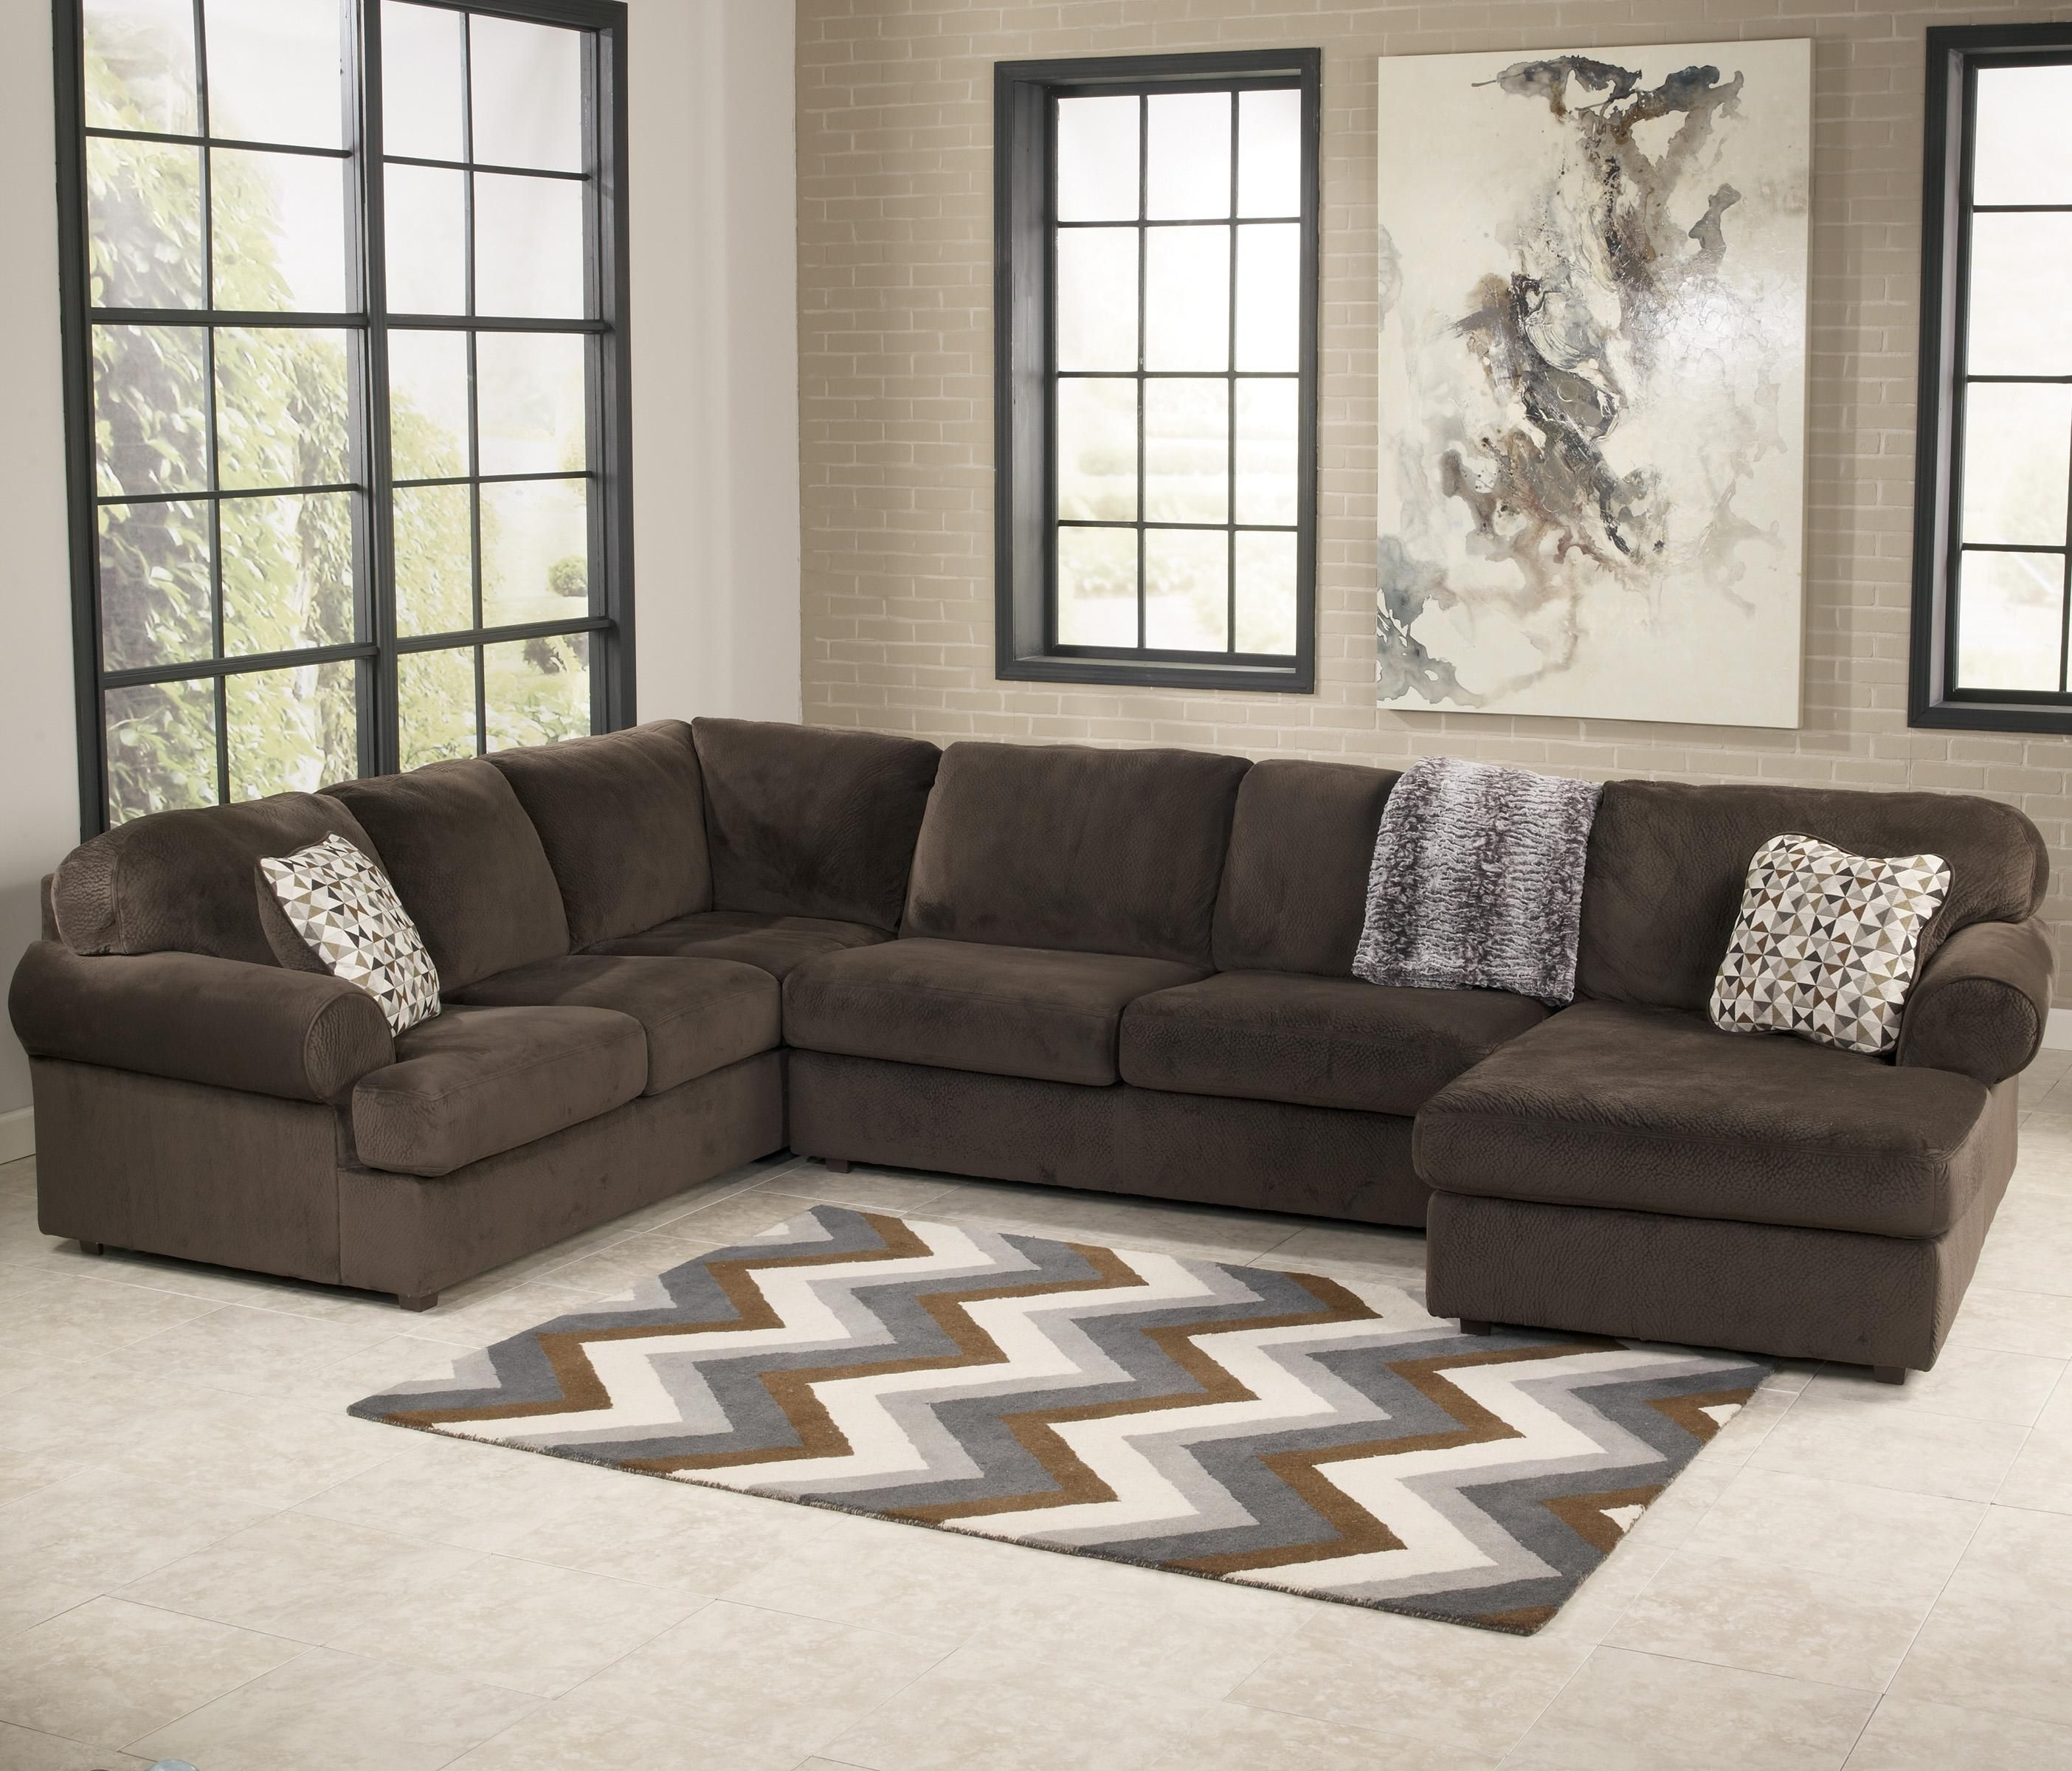 2019 Sectional Sofas Austin Sleeper Sofa Tx Texas Leather Stock Photos Throughout Sectional Sofas At Austin (View 1 of 20)